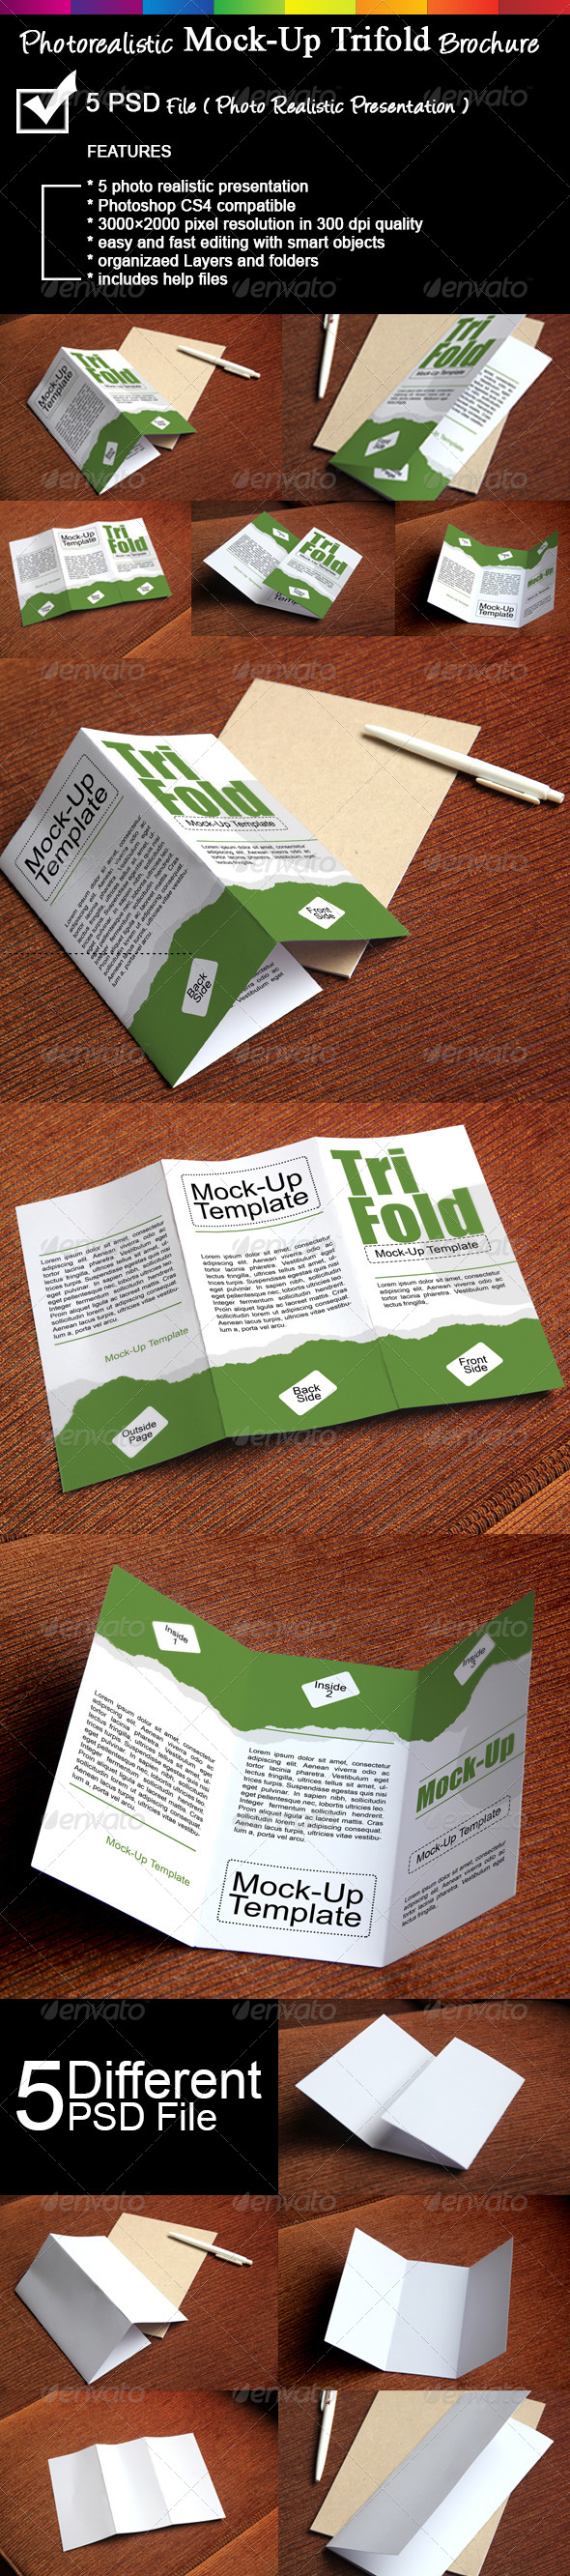 GraphicRiver Photorealistic Trifold Brochure Mock-Up 7215566